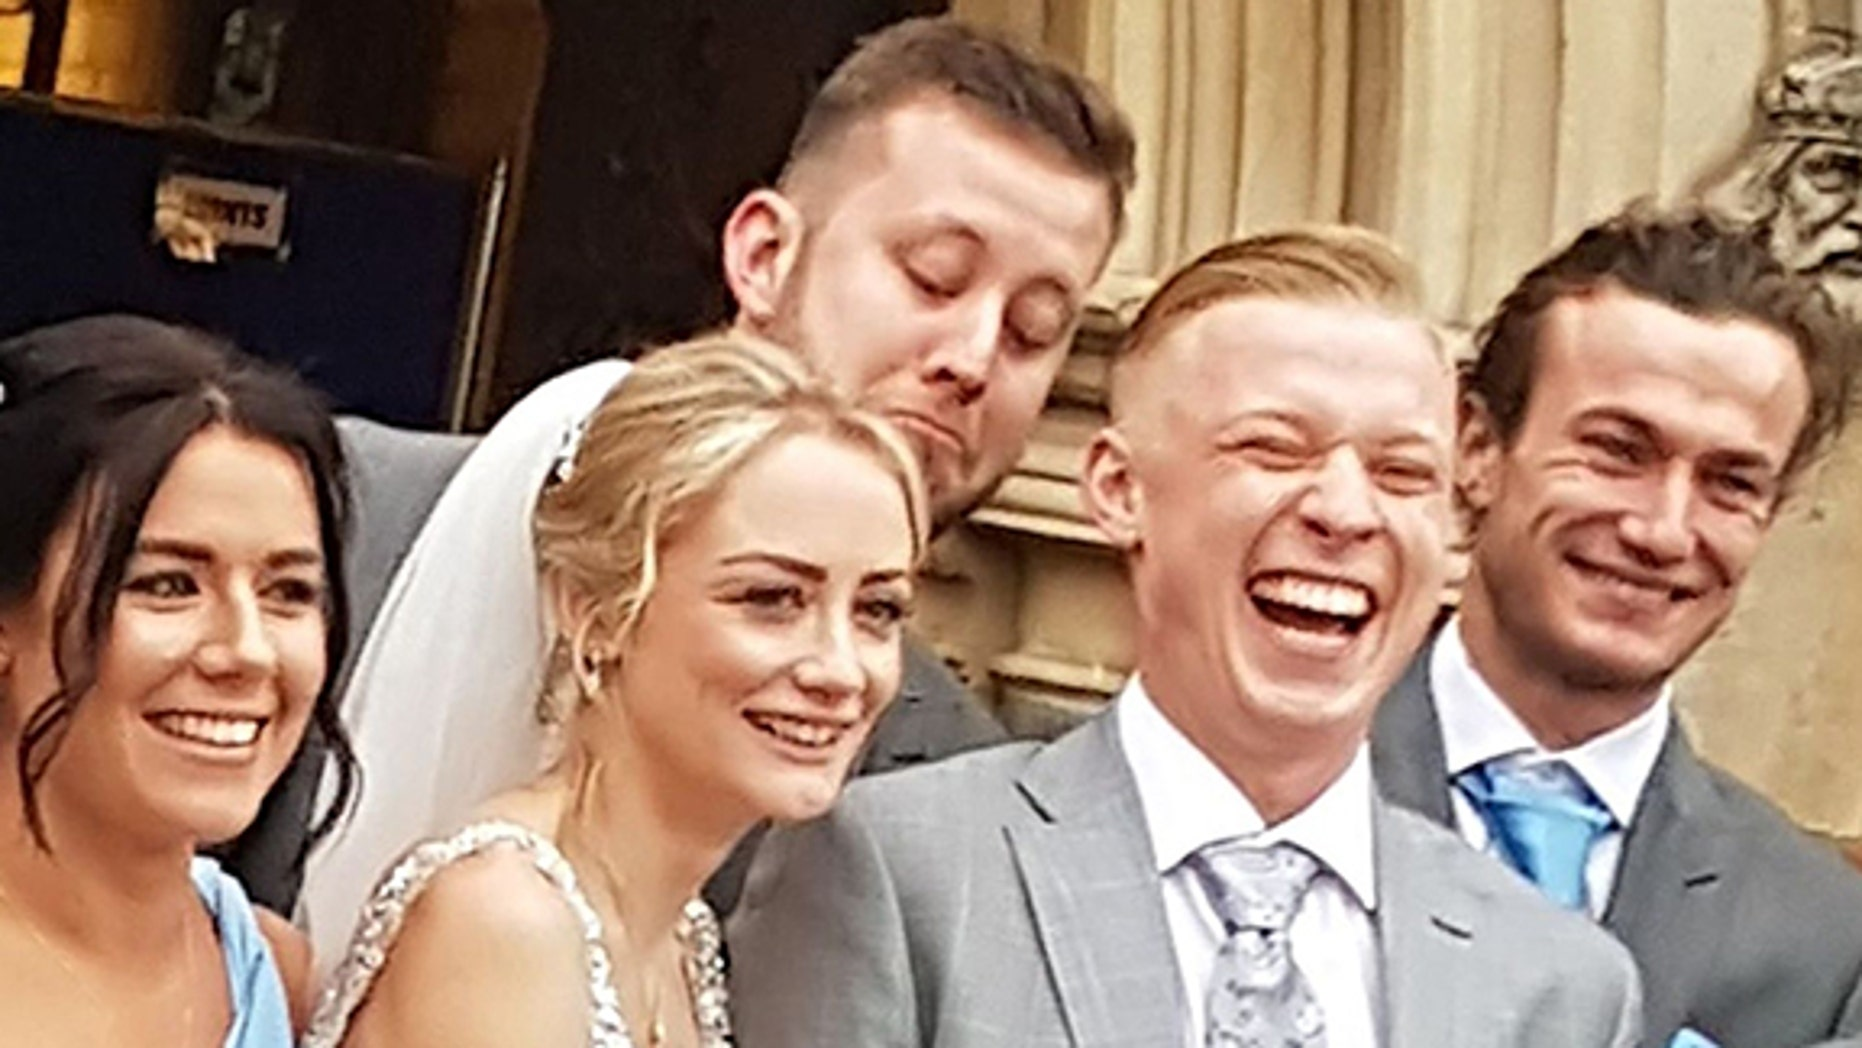 Andy Wills claims he decided to pull a prank on the groom when he saw a friend taking photos nearby.